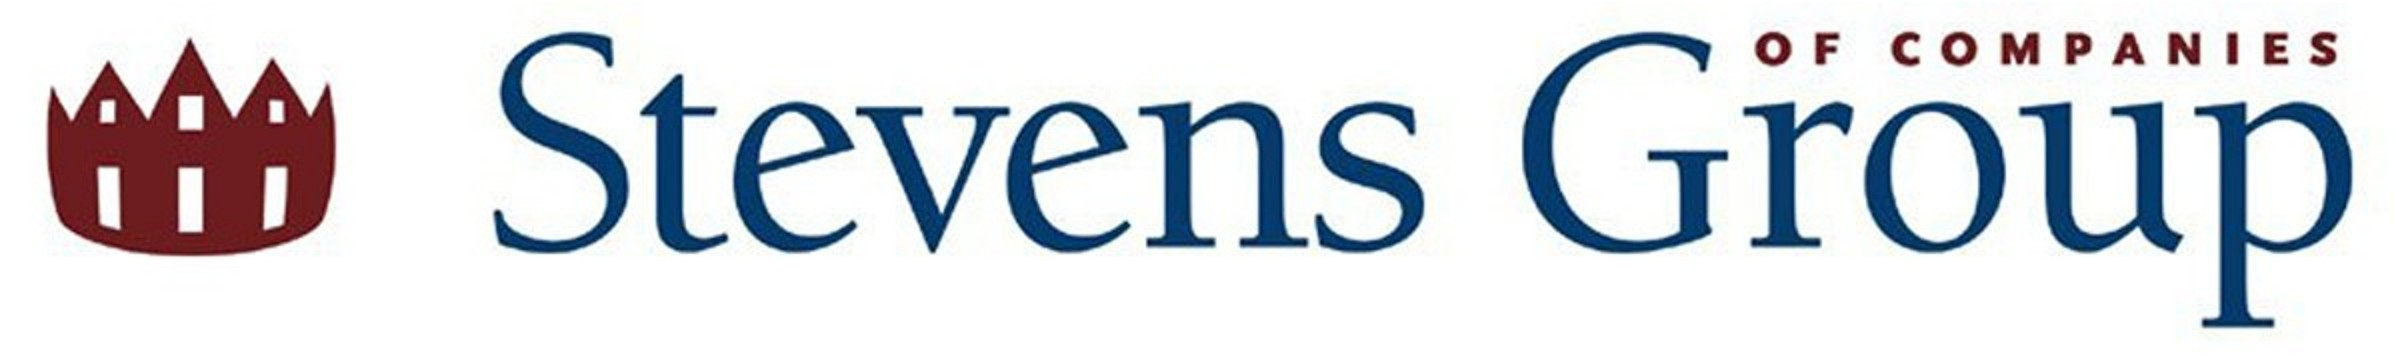 Stevens Group of Companies